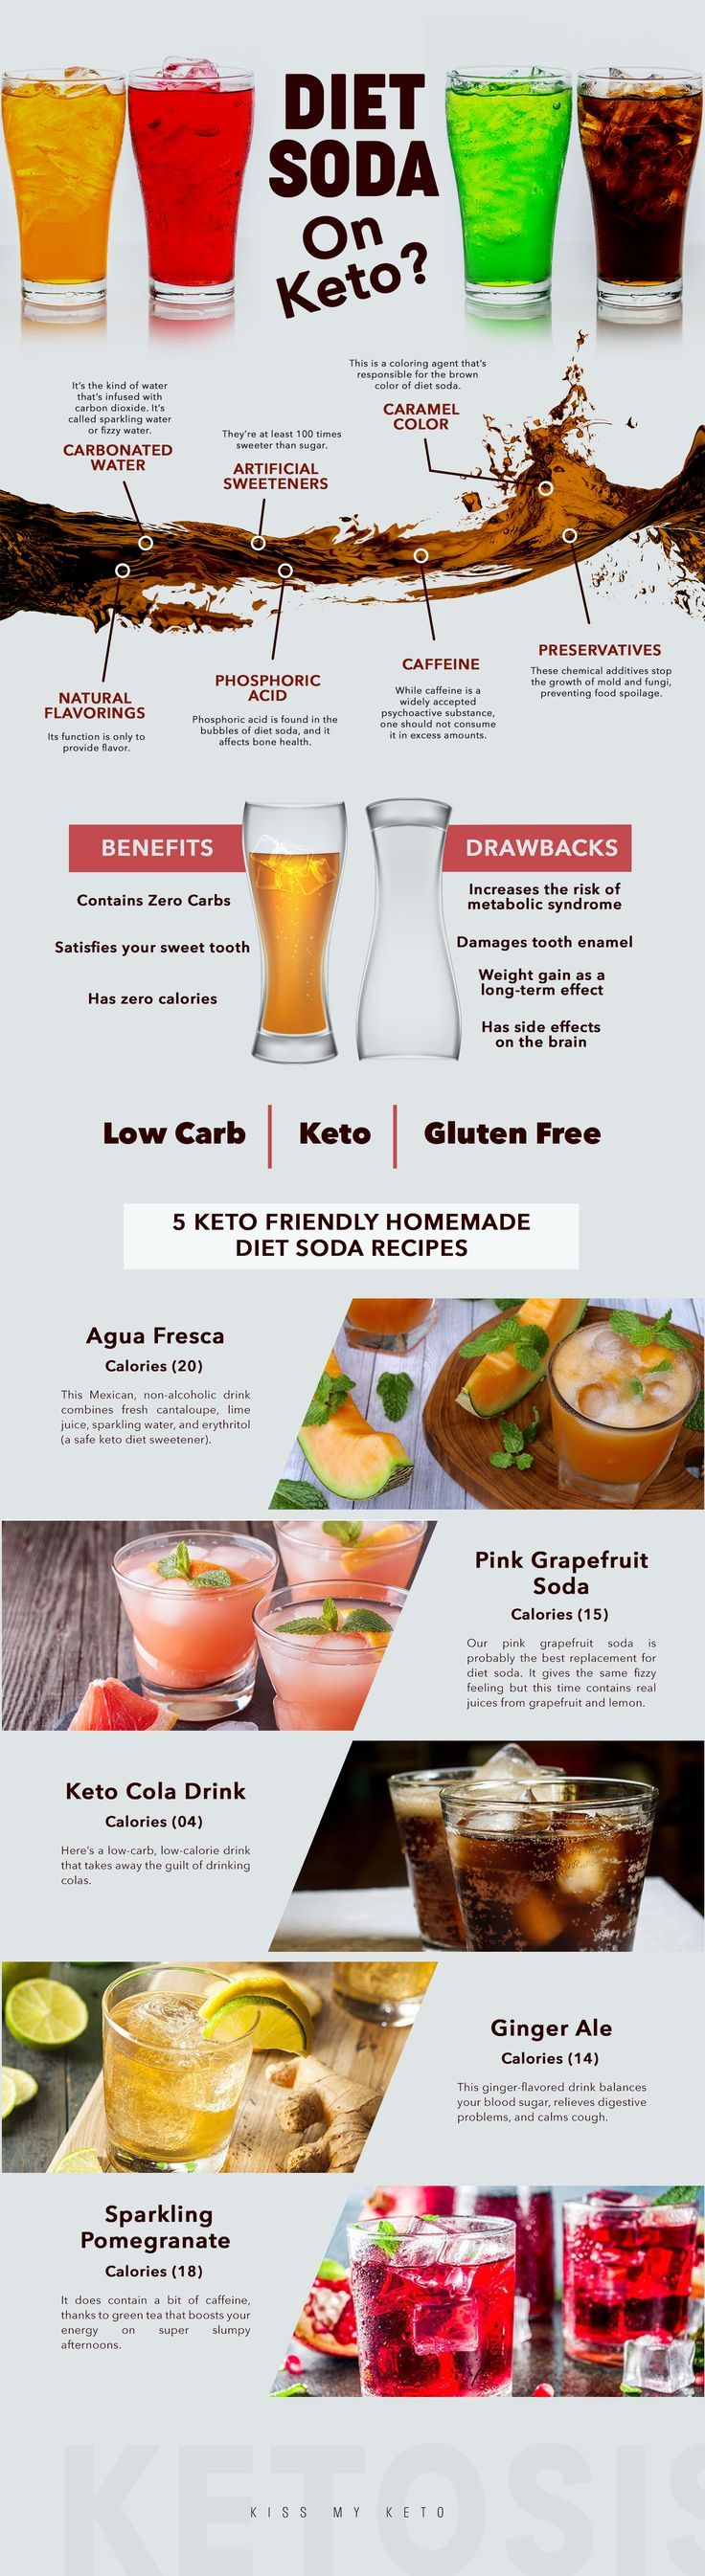 Site Search Discovery Powered By Ai Recipe Diet Soda Nutrition Recipes Keto